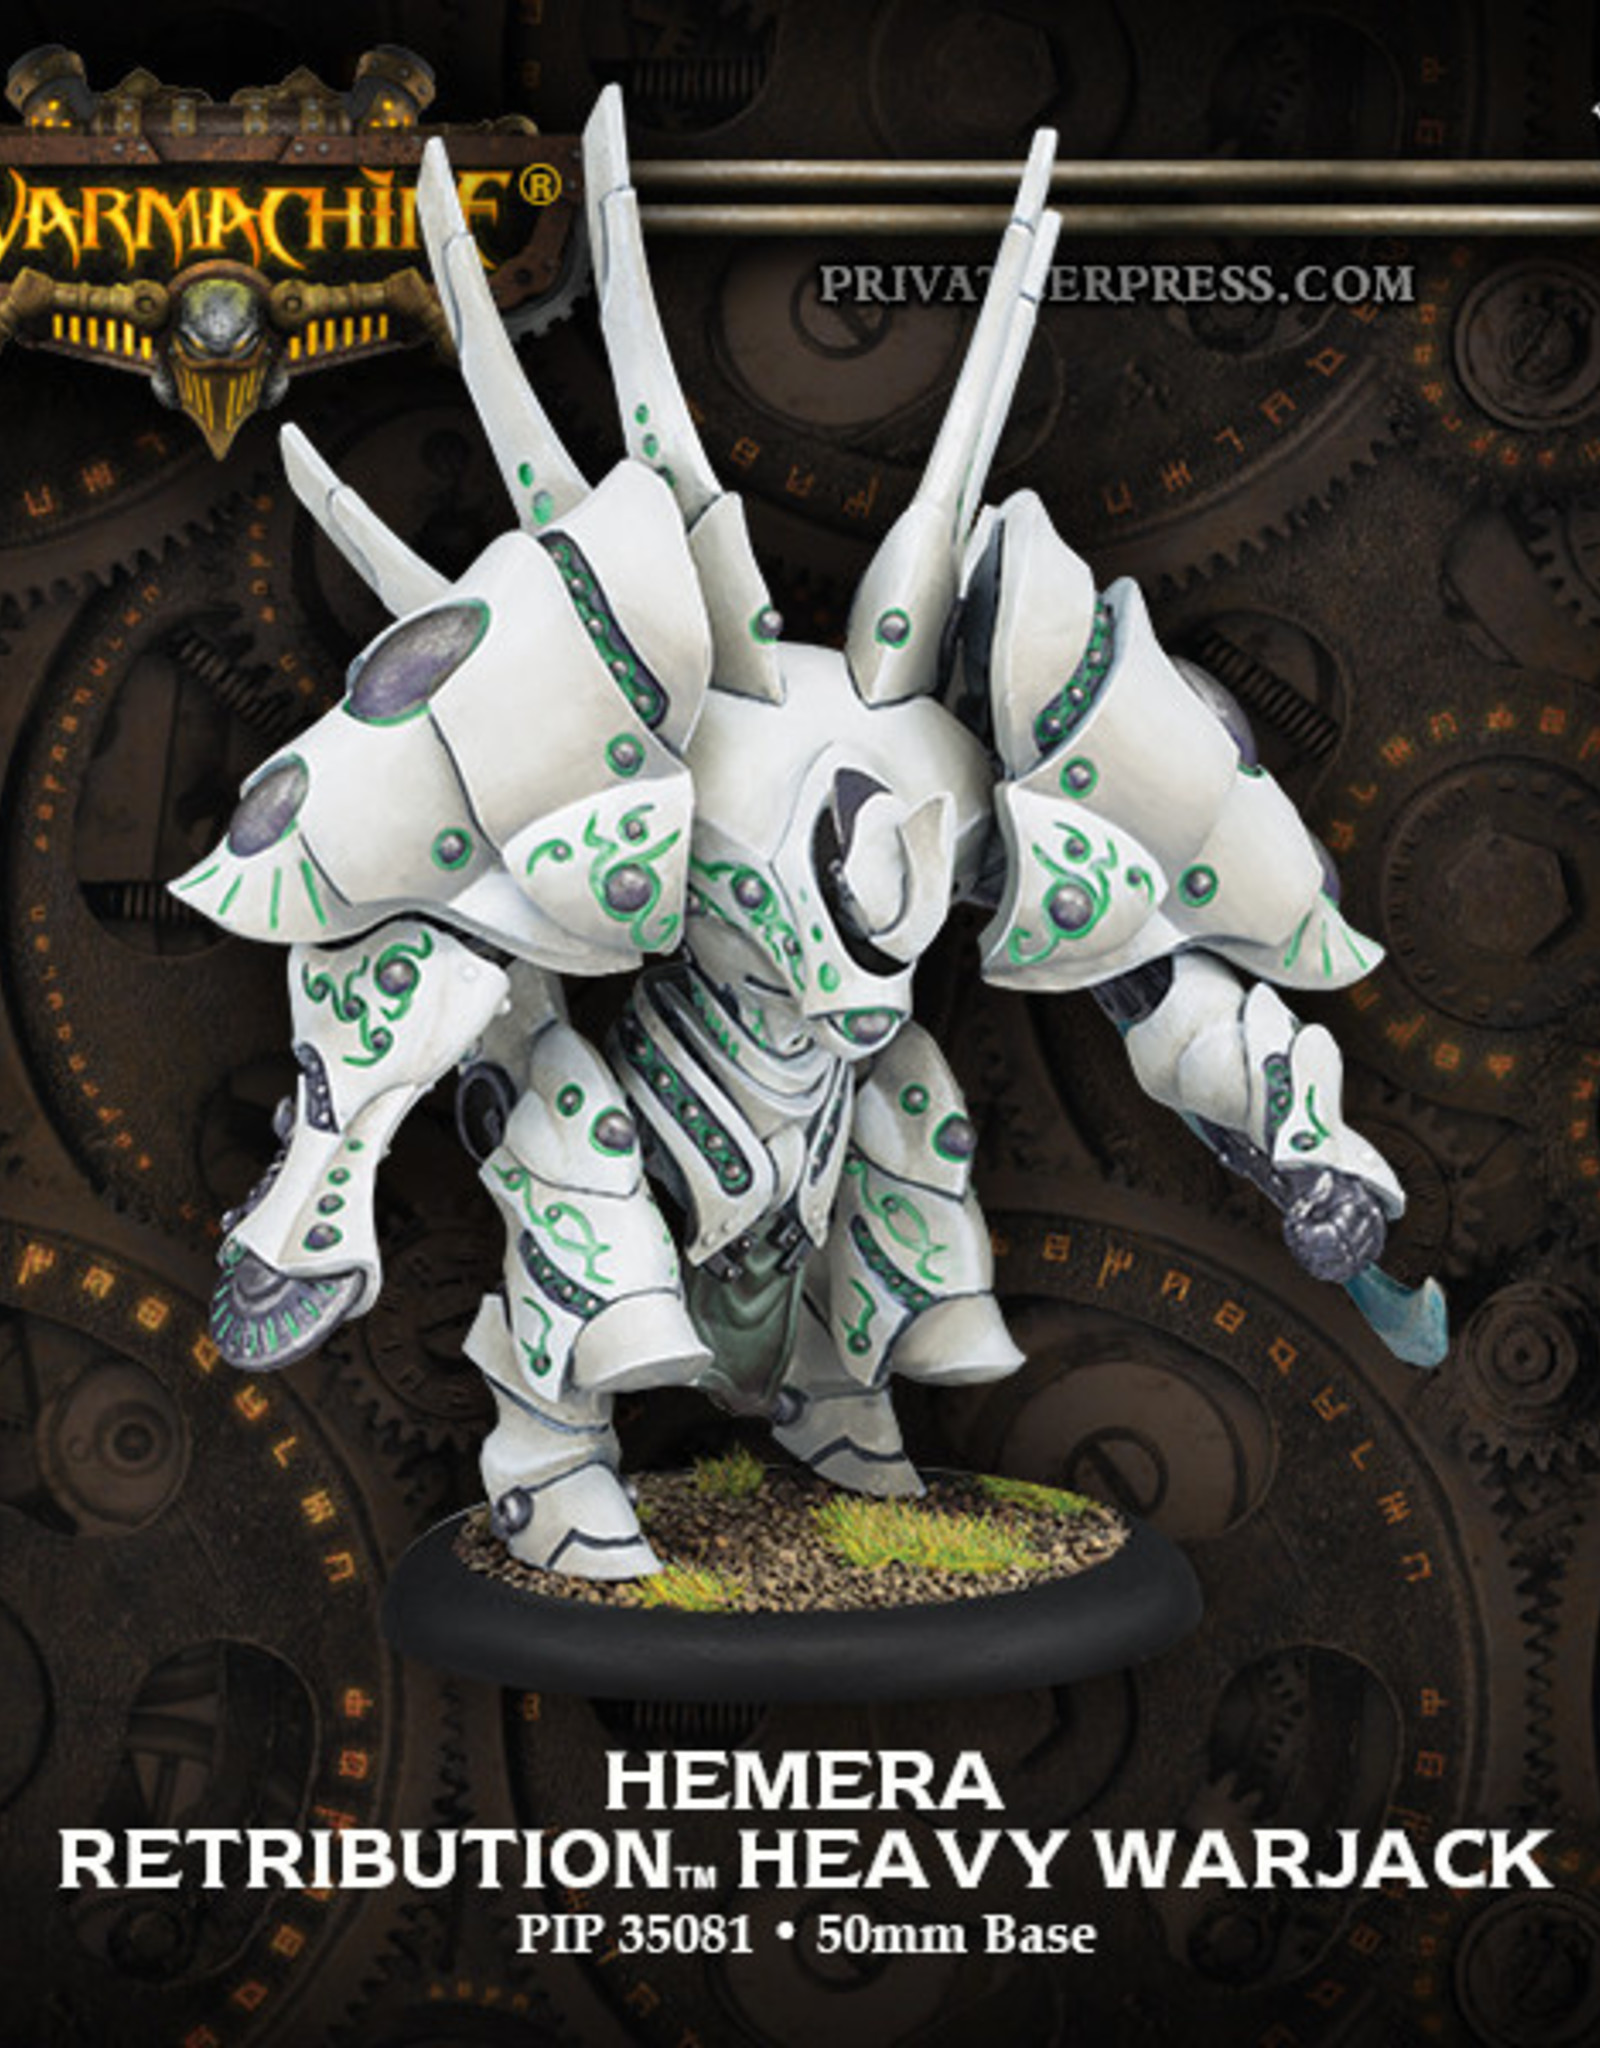 Warmachine Scyrah - Hemera